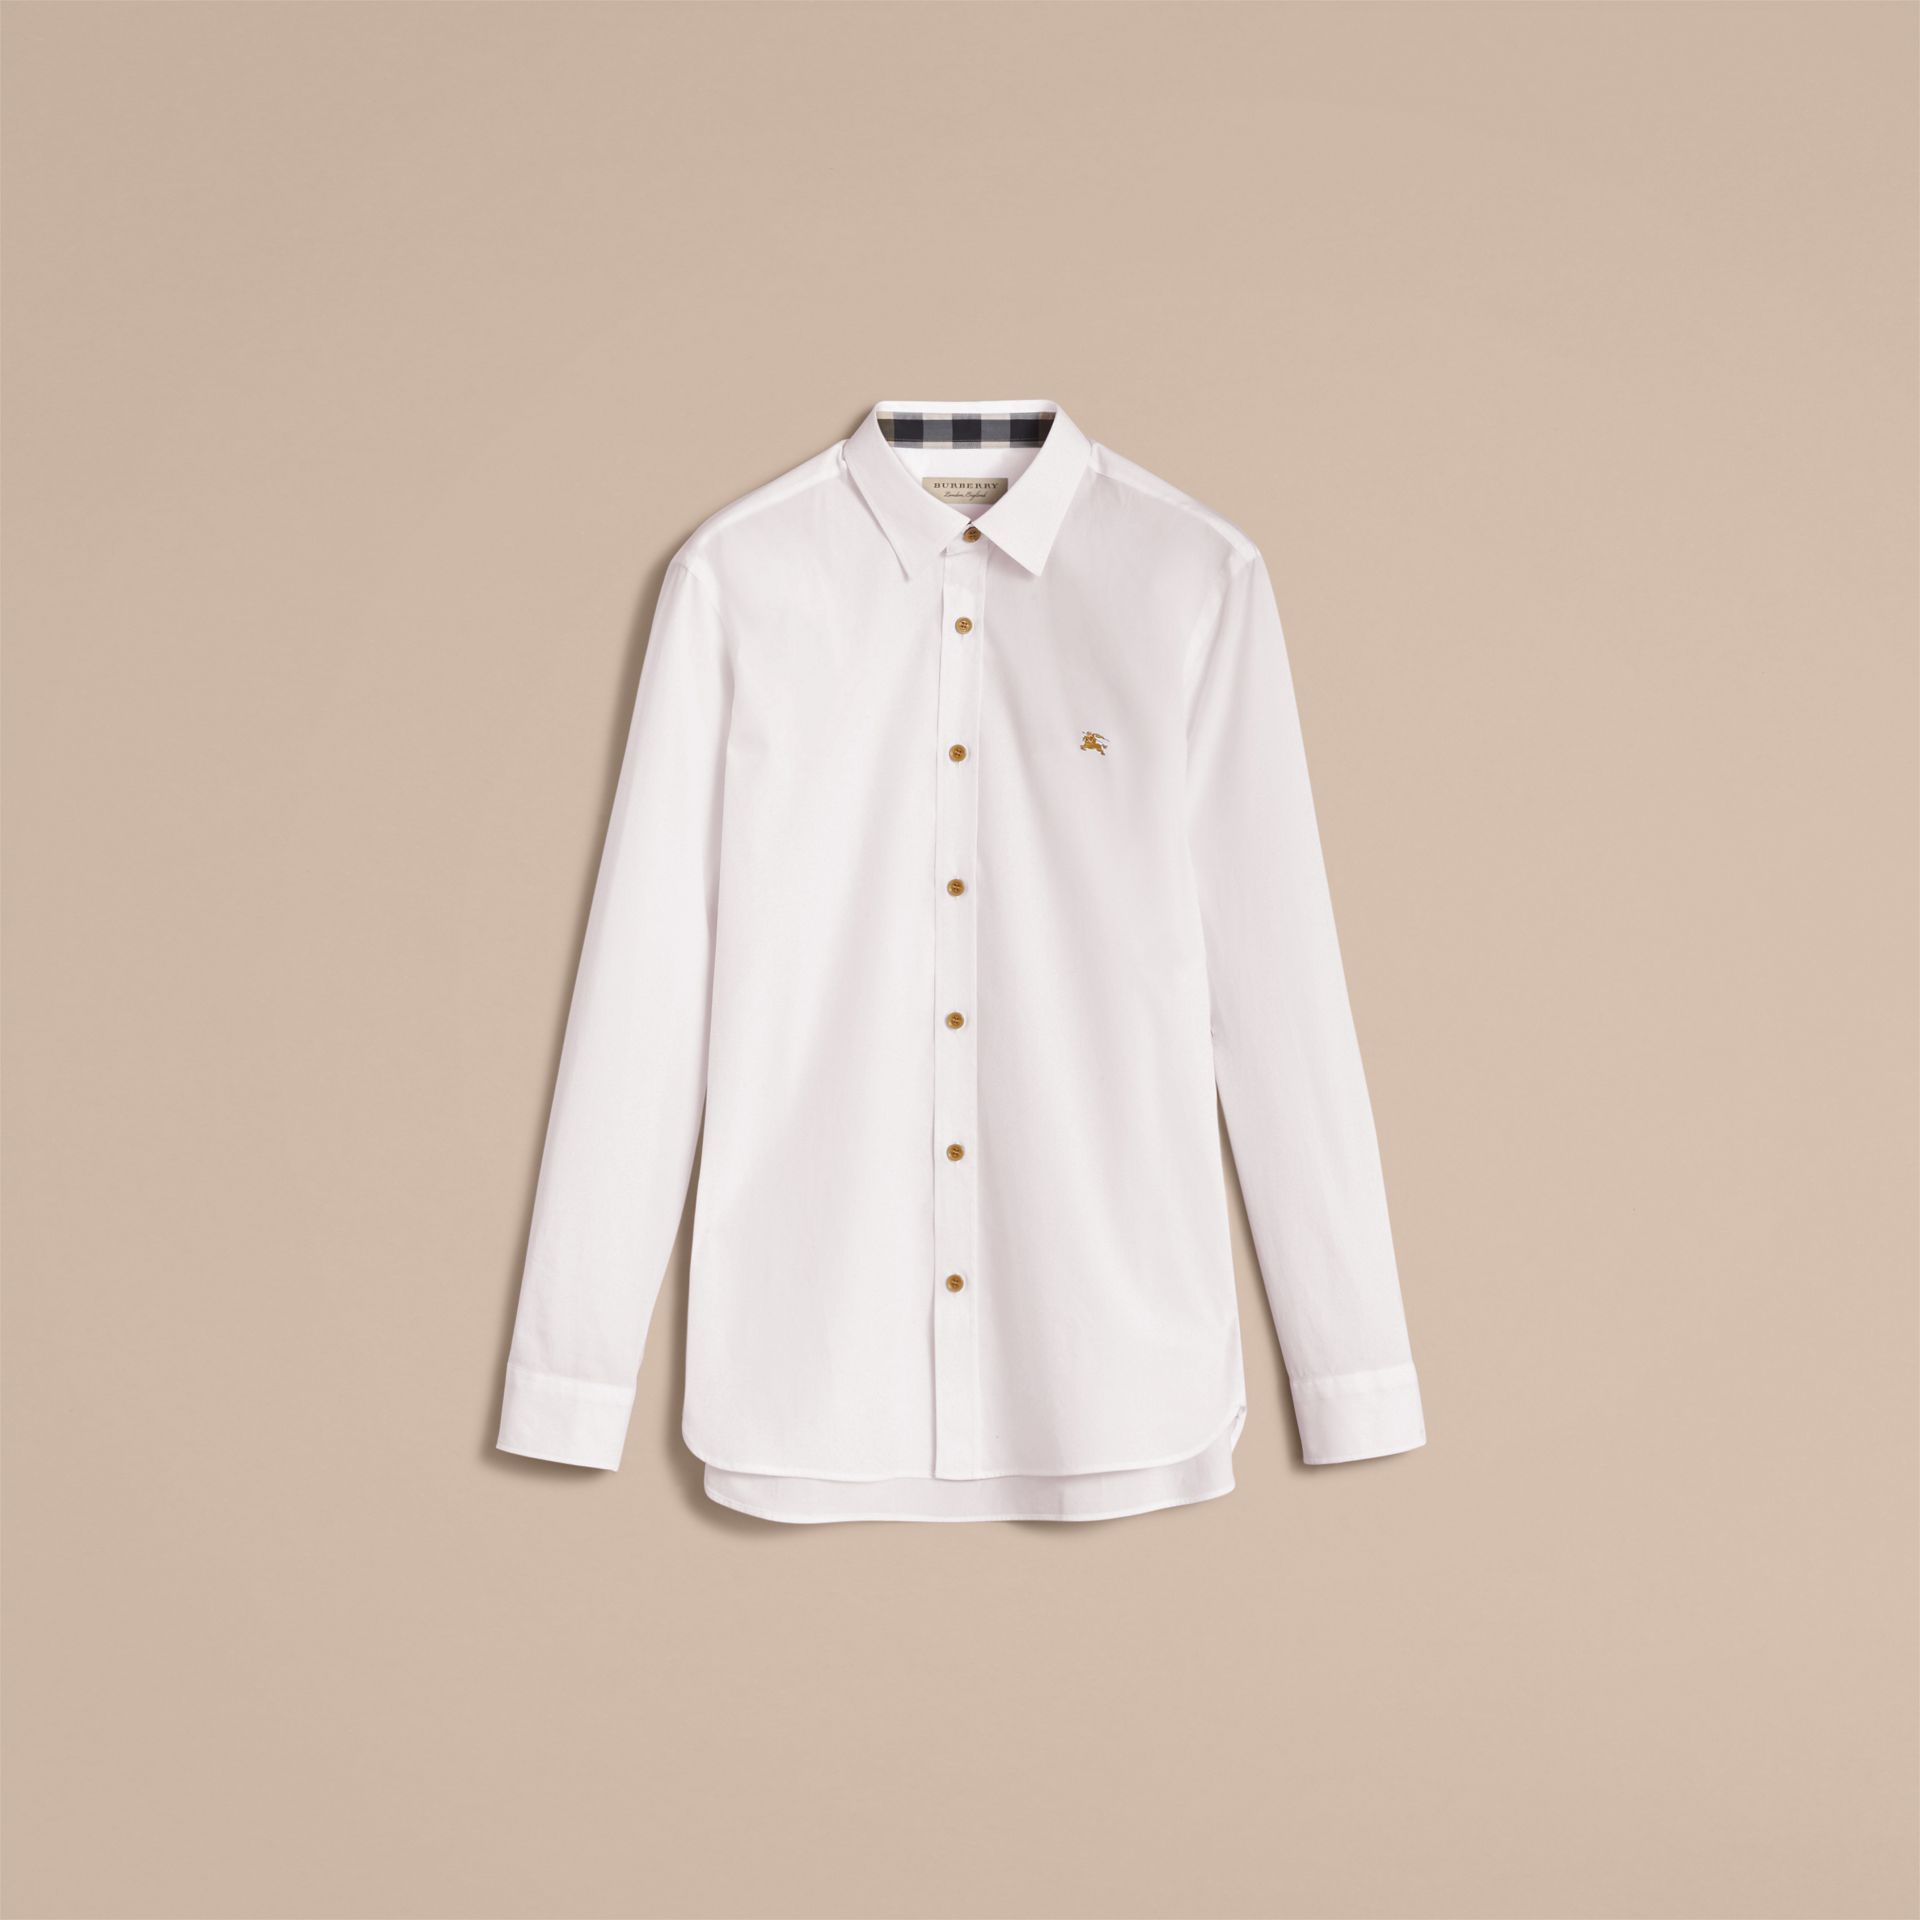 Resin Button Cotton Poplin Shirt in White - Men | Burberry - gallery image 4